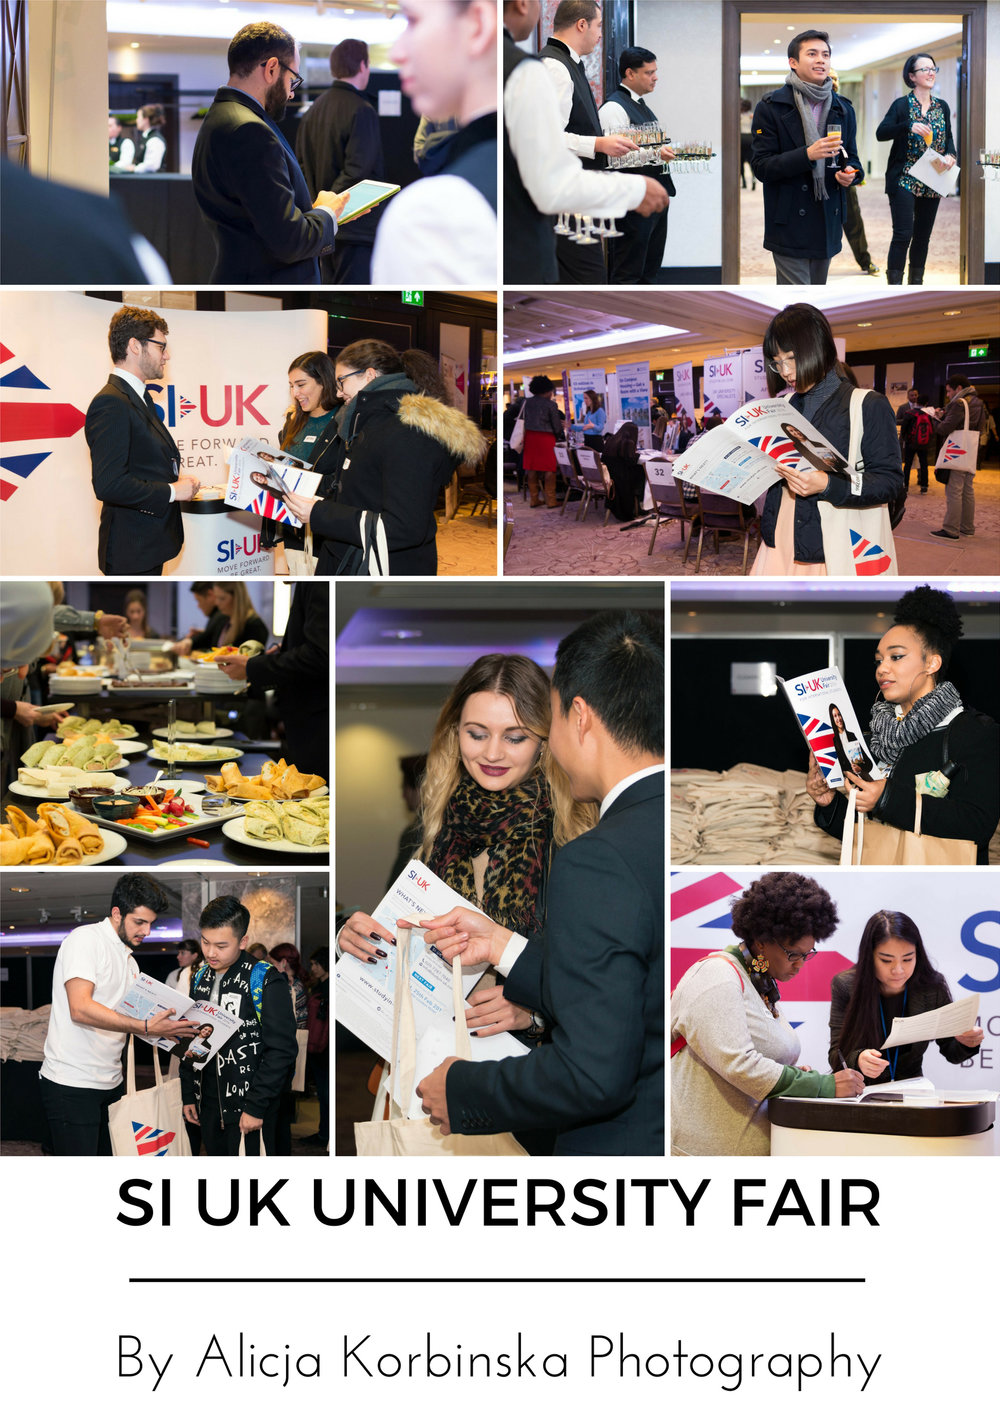 Largest UK's University Fair for international students in London by SI-UK. Consultants, universities and students all hard at work.